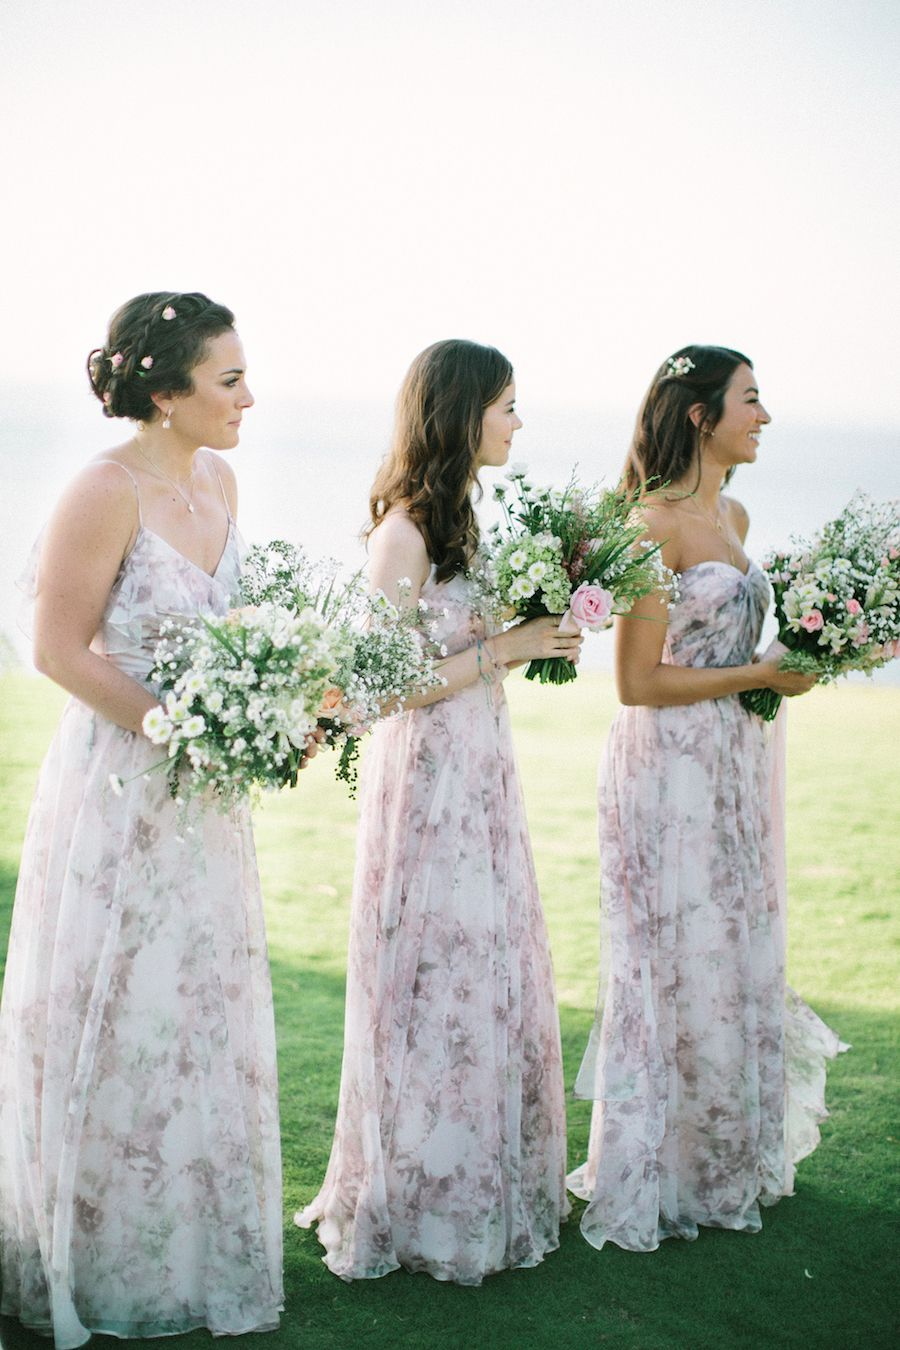 Fall outdoor wedding dresses  Floral Inspired Spring Wedding Looks  Bridesmaid Style  Pinterest